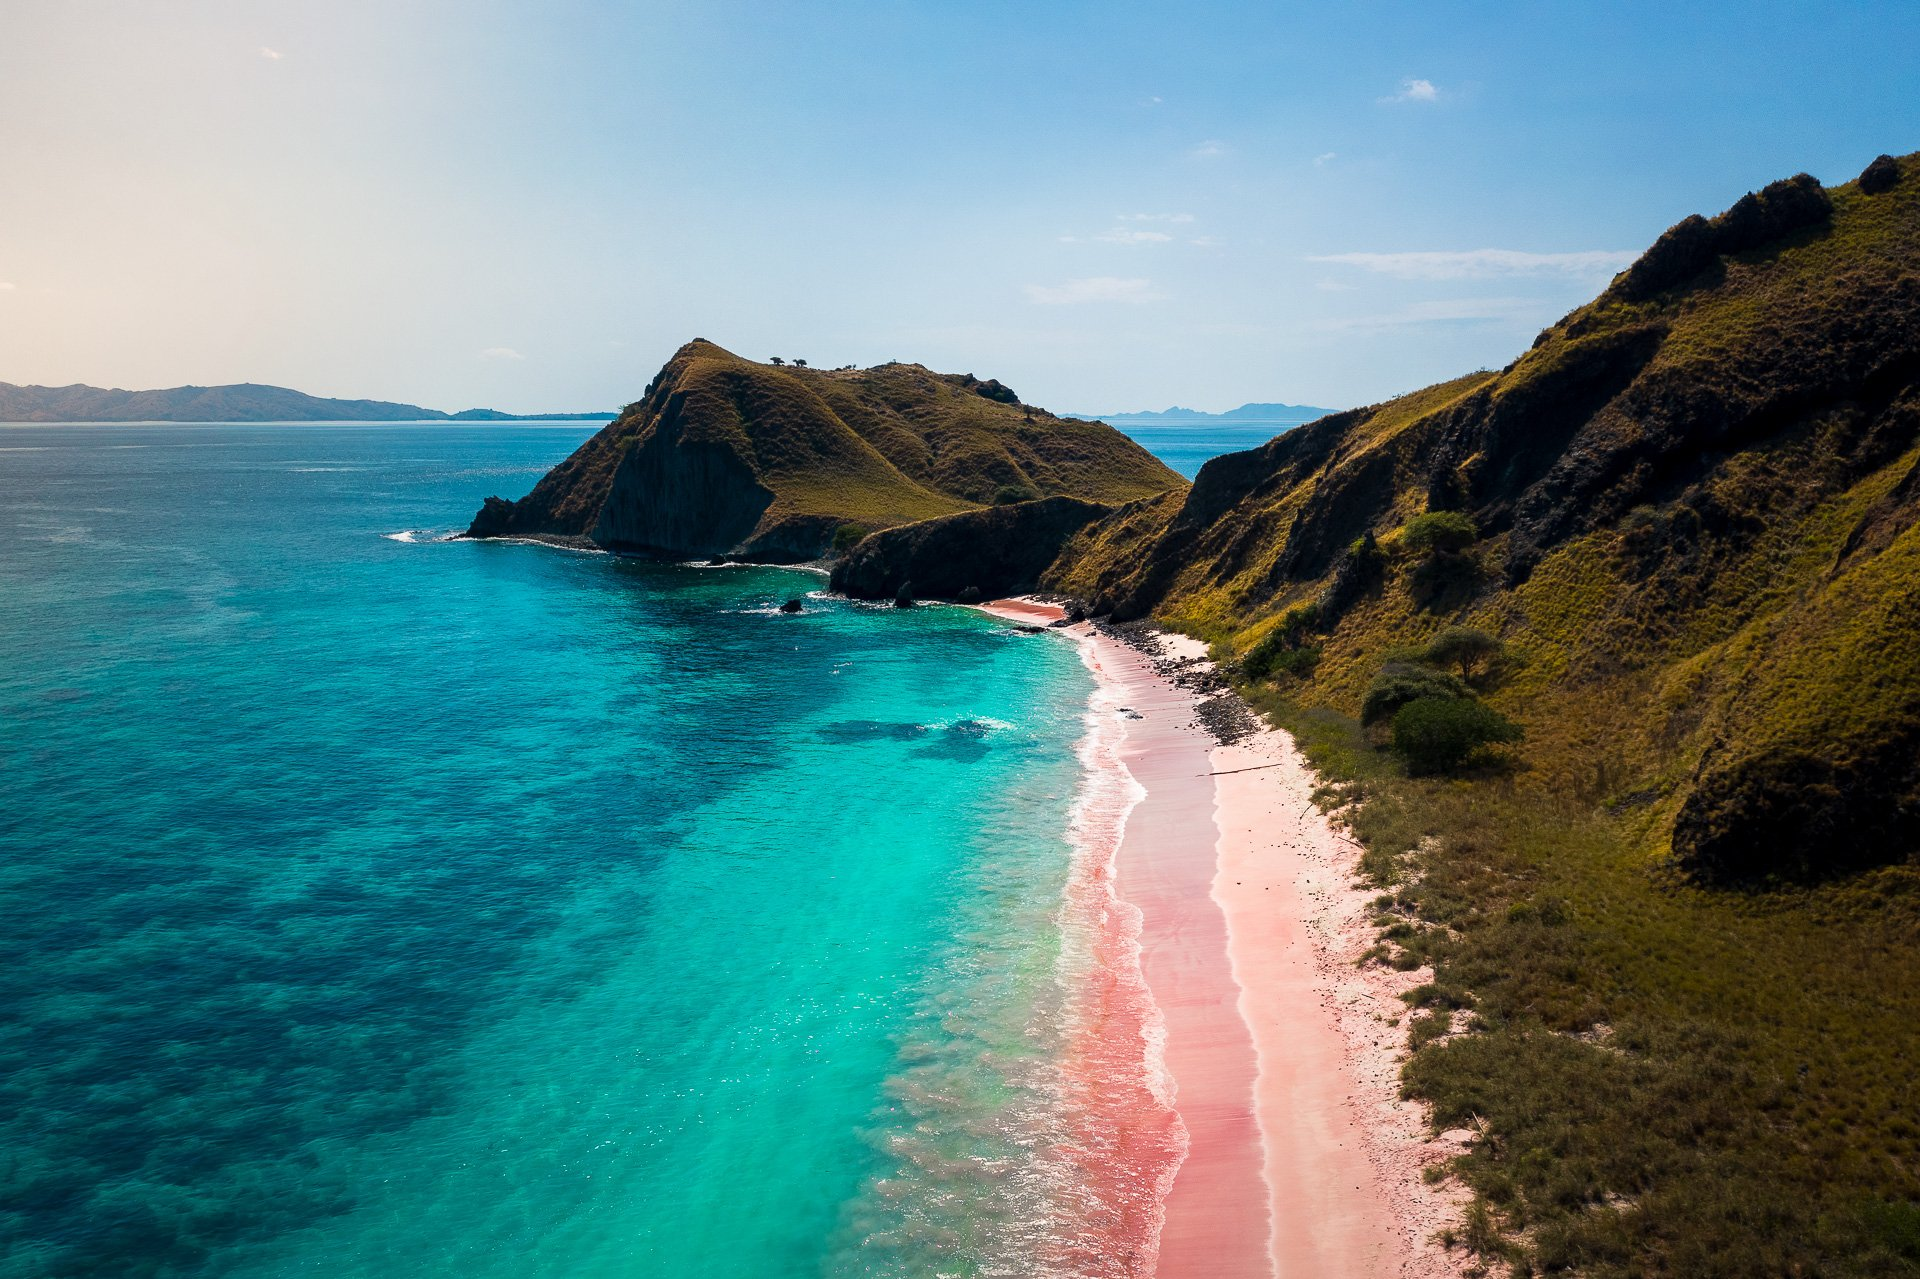 Beachgoers are warned to keep some distance from these venomous animals whose stings still pack a punch long after they've died. All Pink Beach Info Private Indonesia Roundtrips Merapi Tour Travel